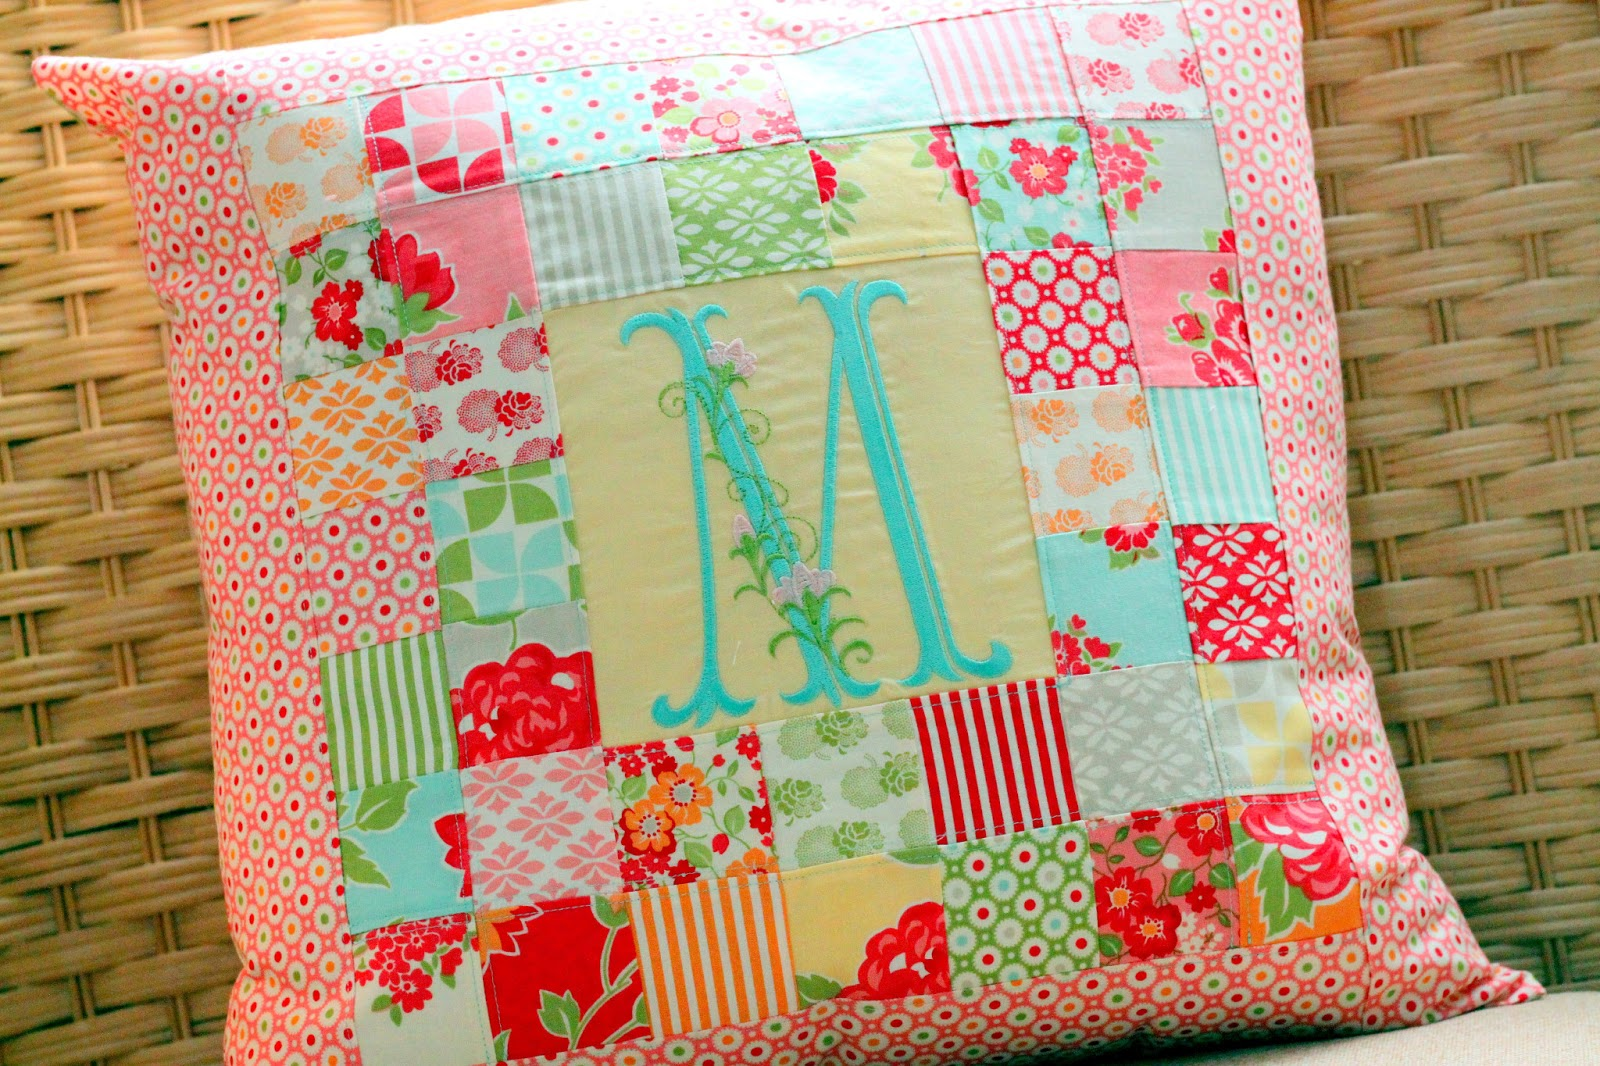 Quilted Pillowcase Patterns Free: Patchwork Pillow Pattern and Tutorial   The Cottage Mama,